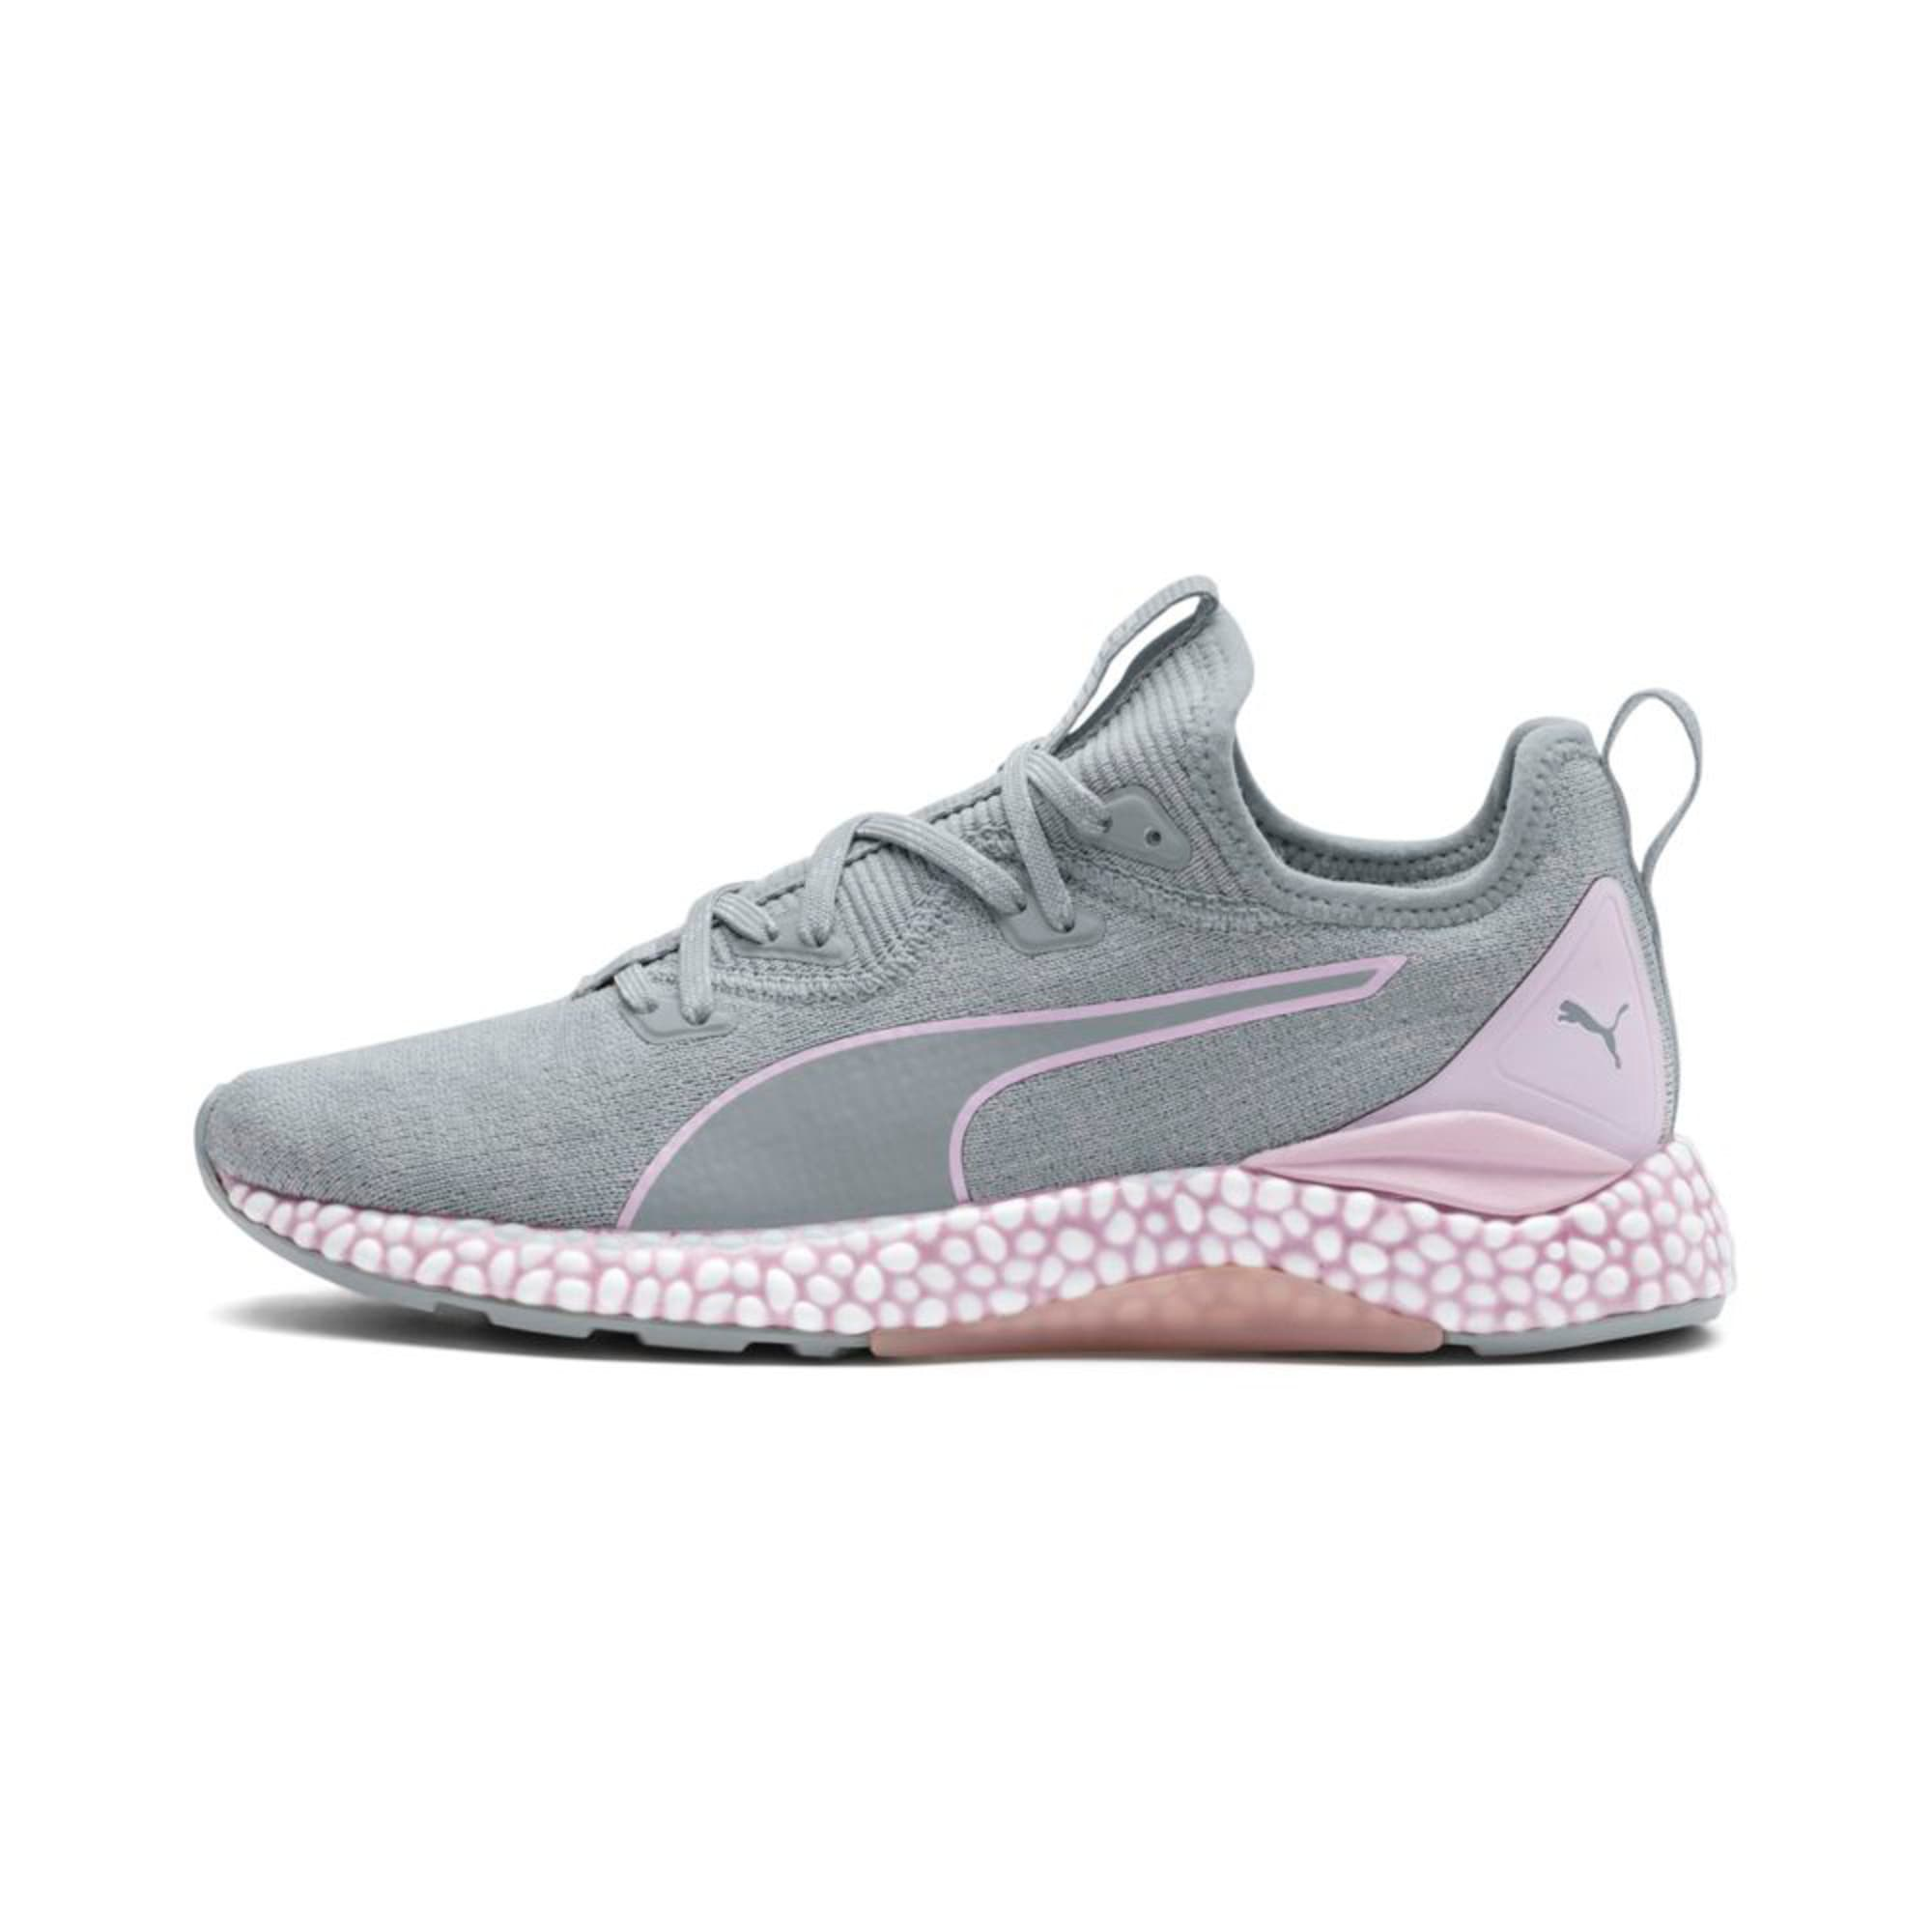 Thumbnail 1 of Hybrid Runner Women's Running Shoes, Quarry-Winsome Orchid, medium-IND